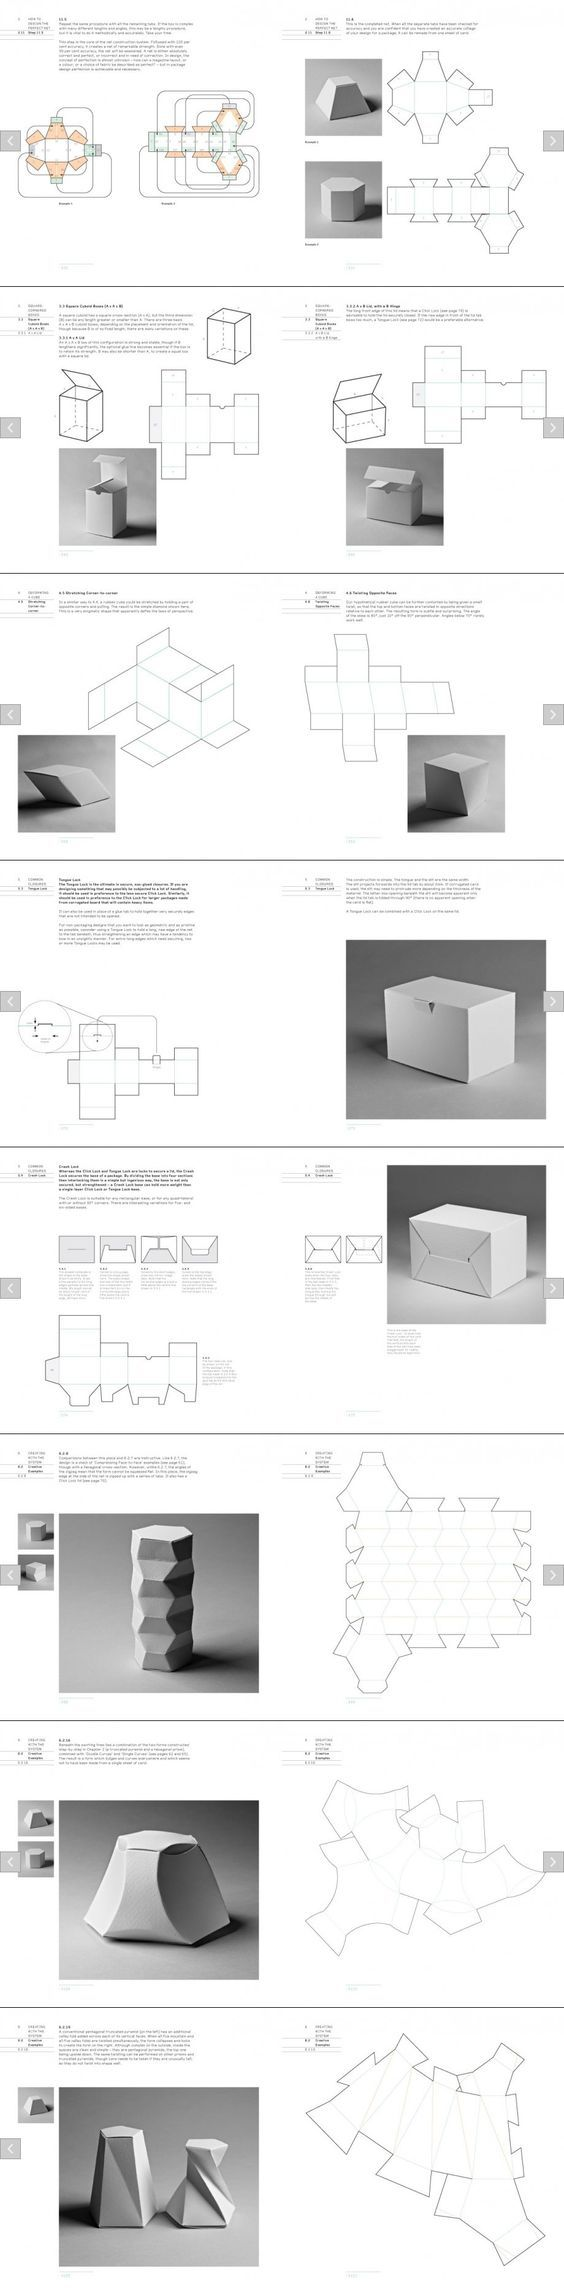 structural packaging: